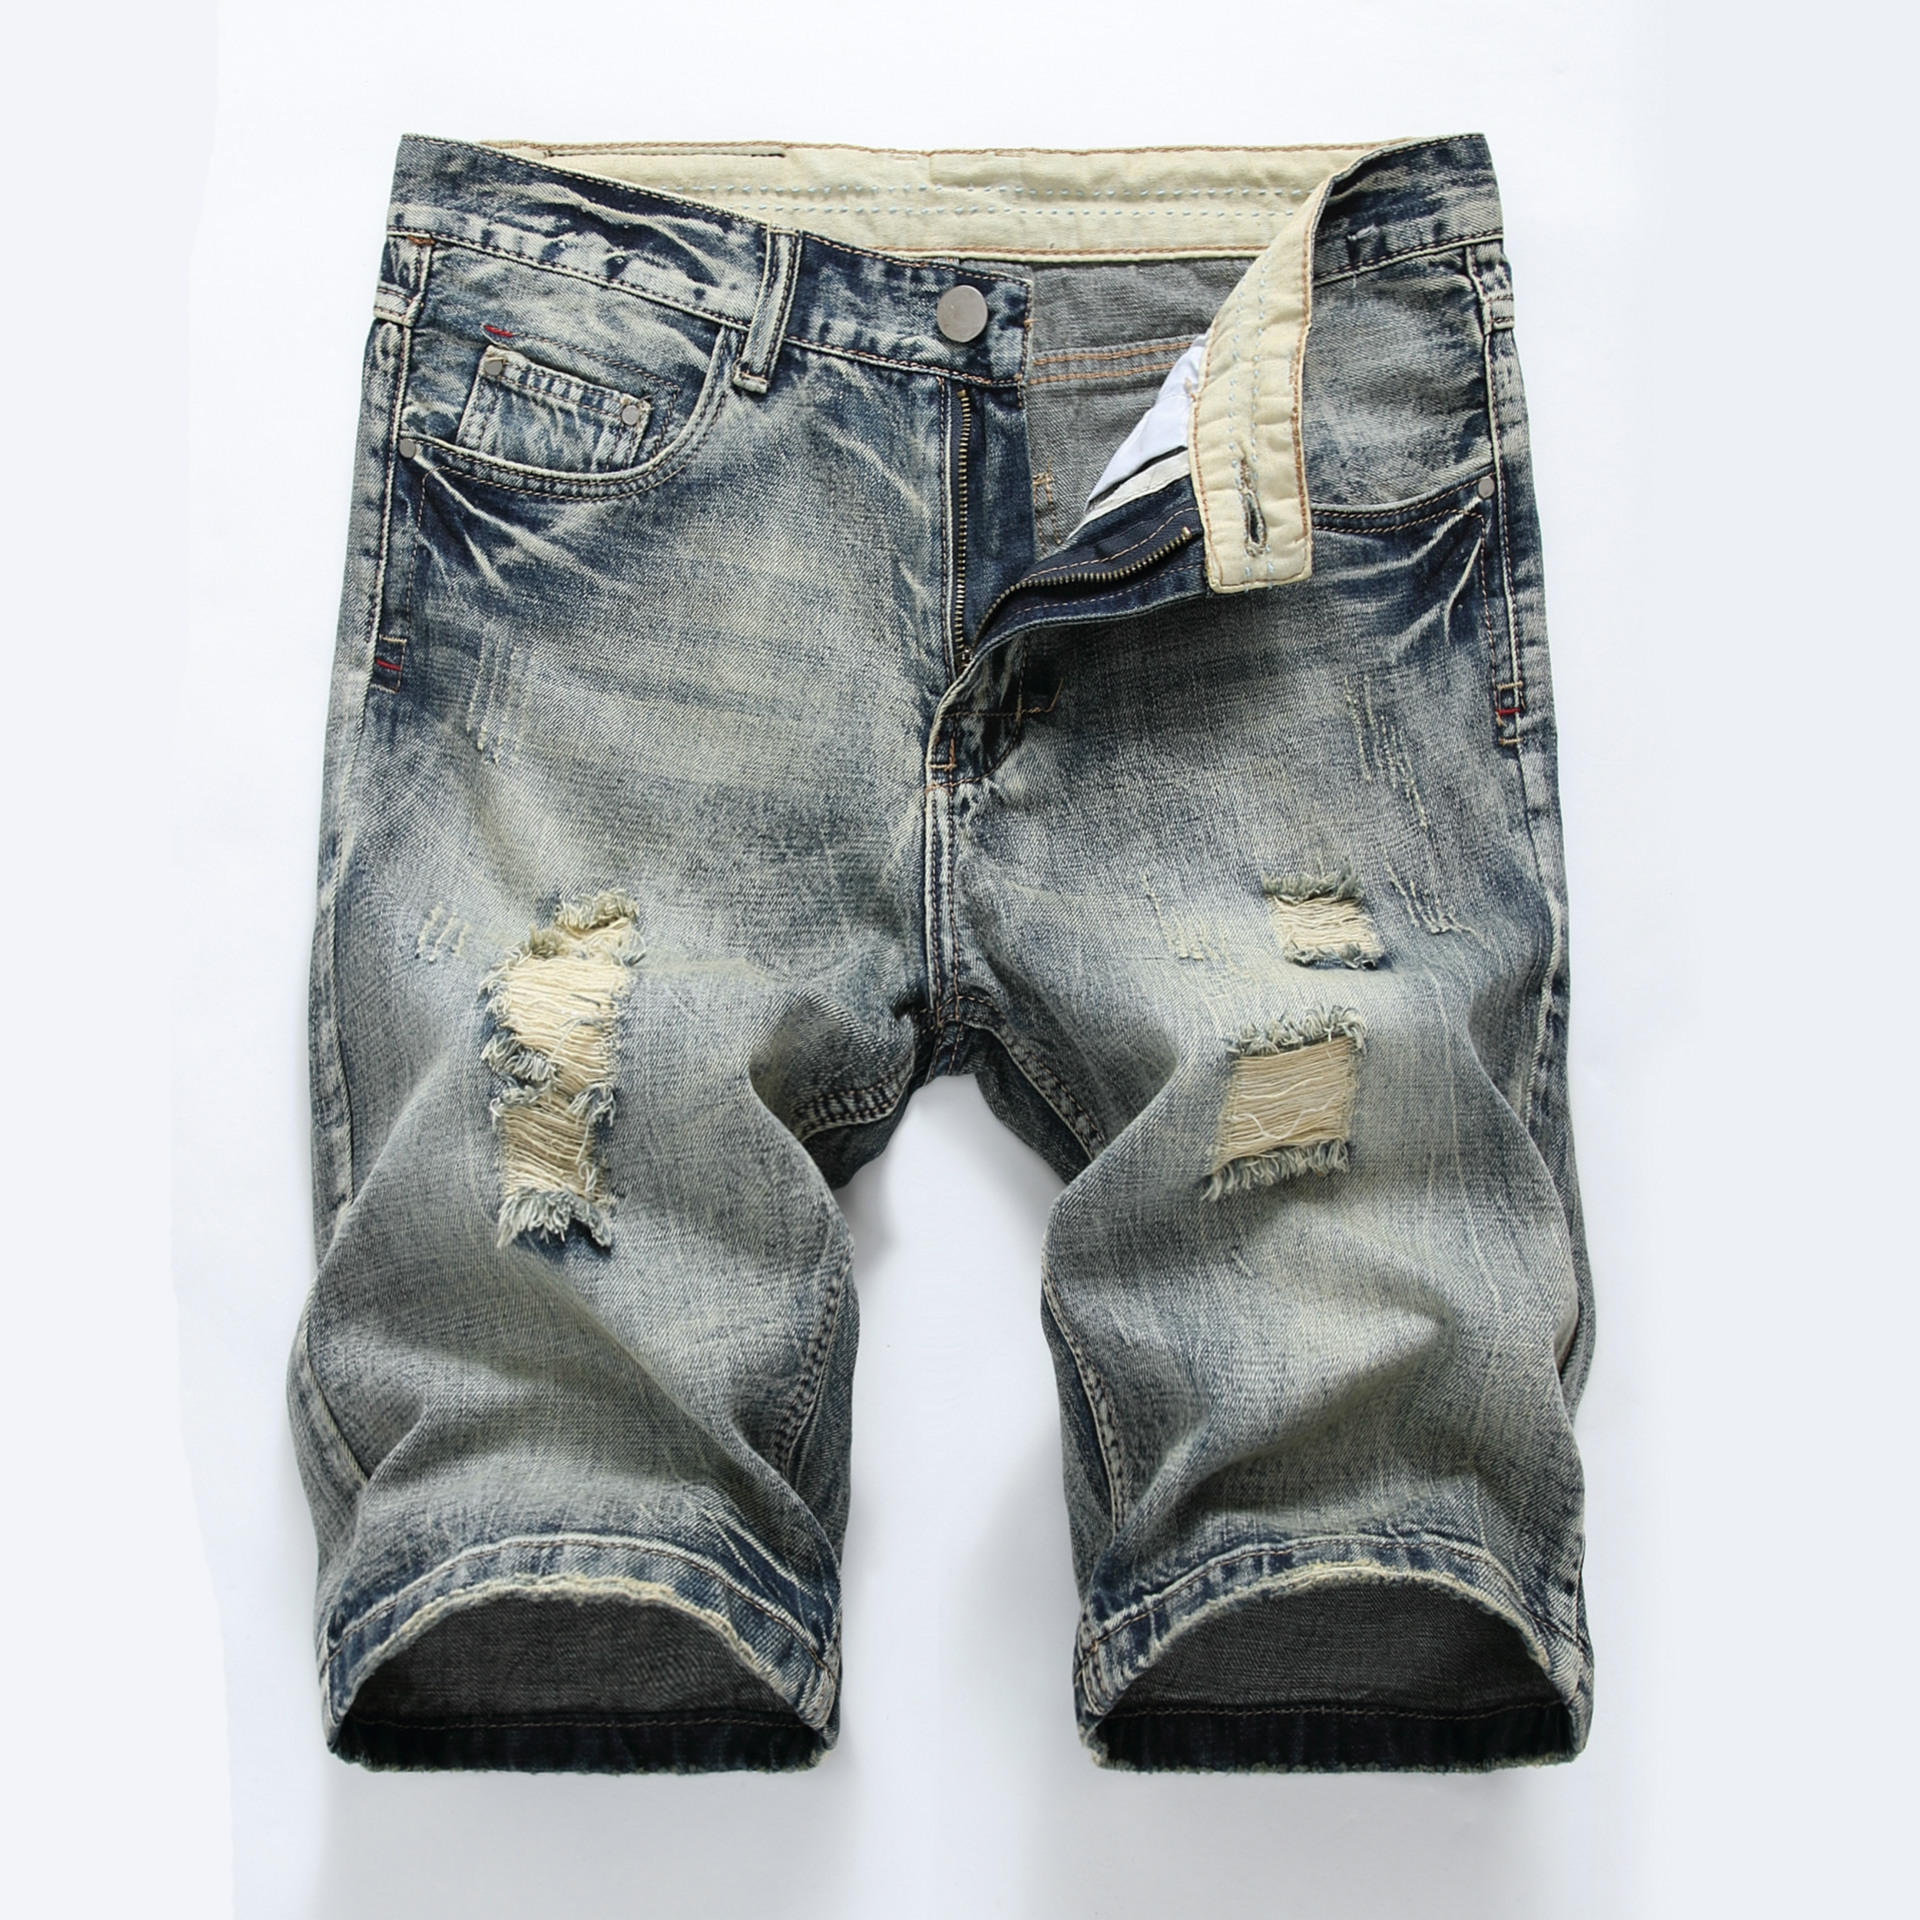 Hot Summer Casual Ripped Shorts Jeans Men Brand Wash Cotton Distressed Straight Mens Denim Shorts Bermuda Jeans Shorts Hommes